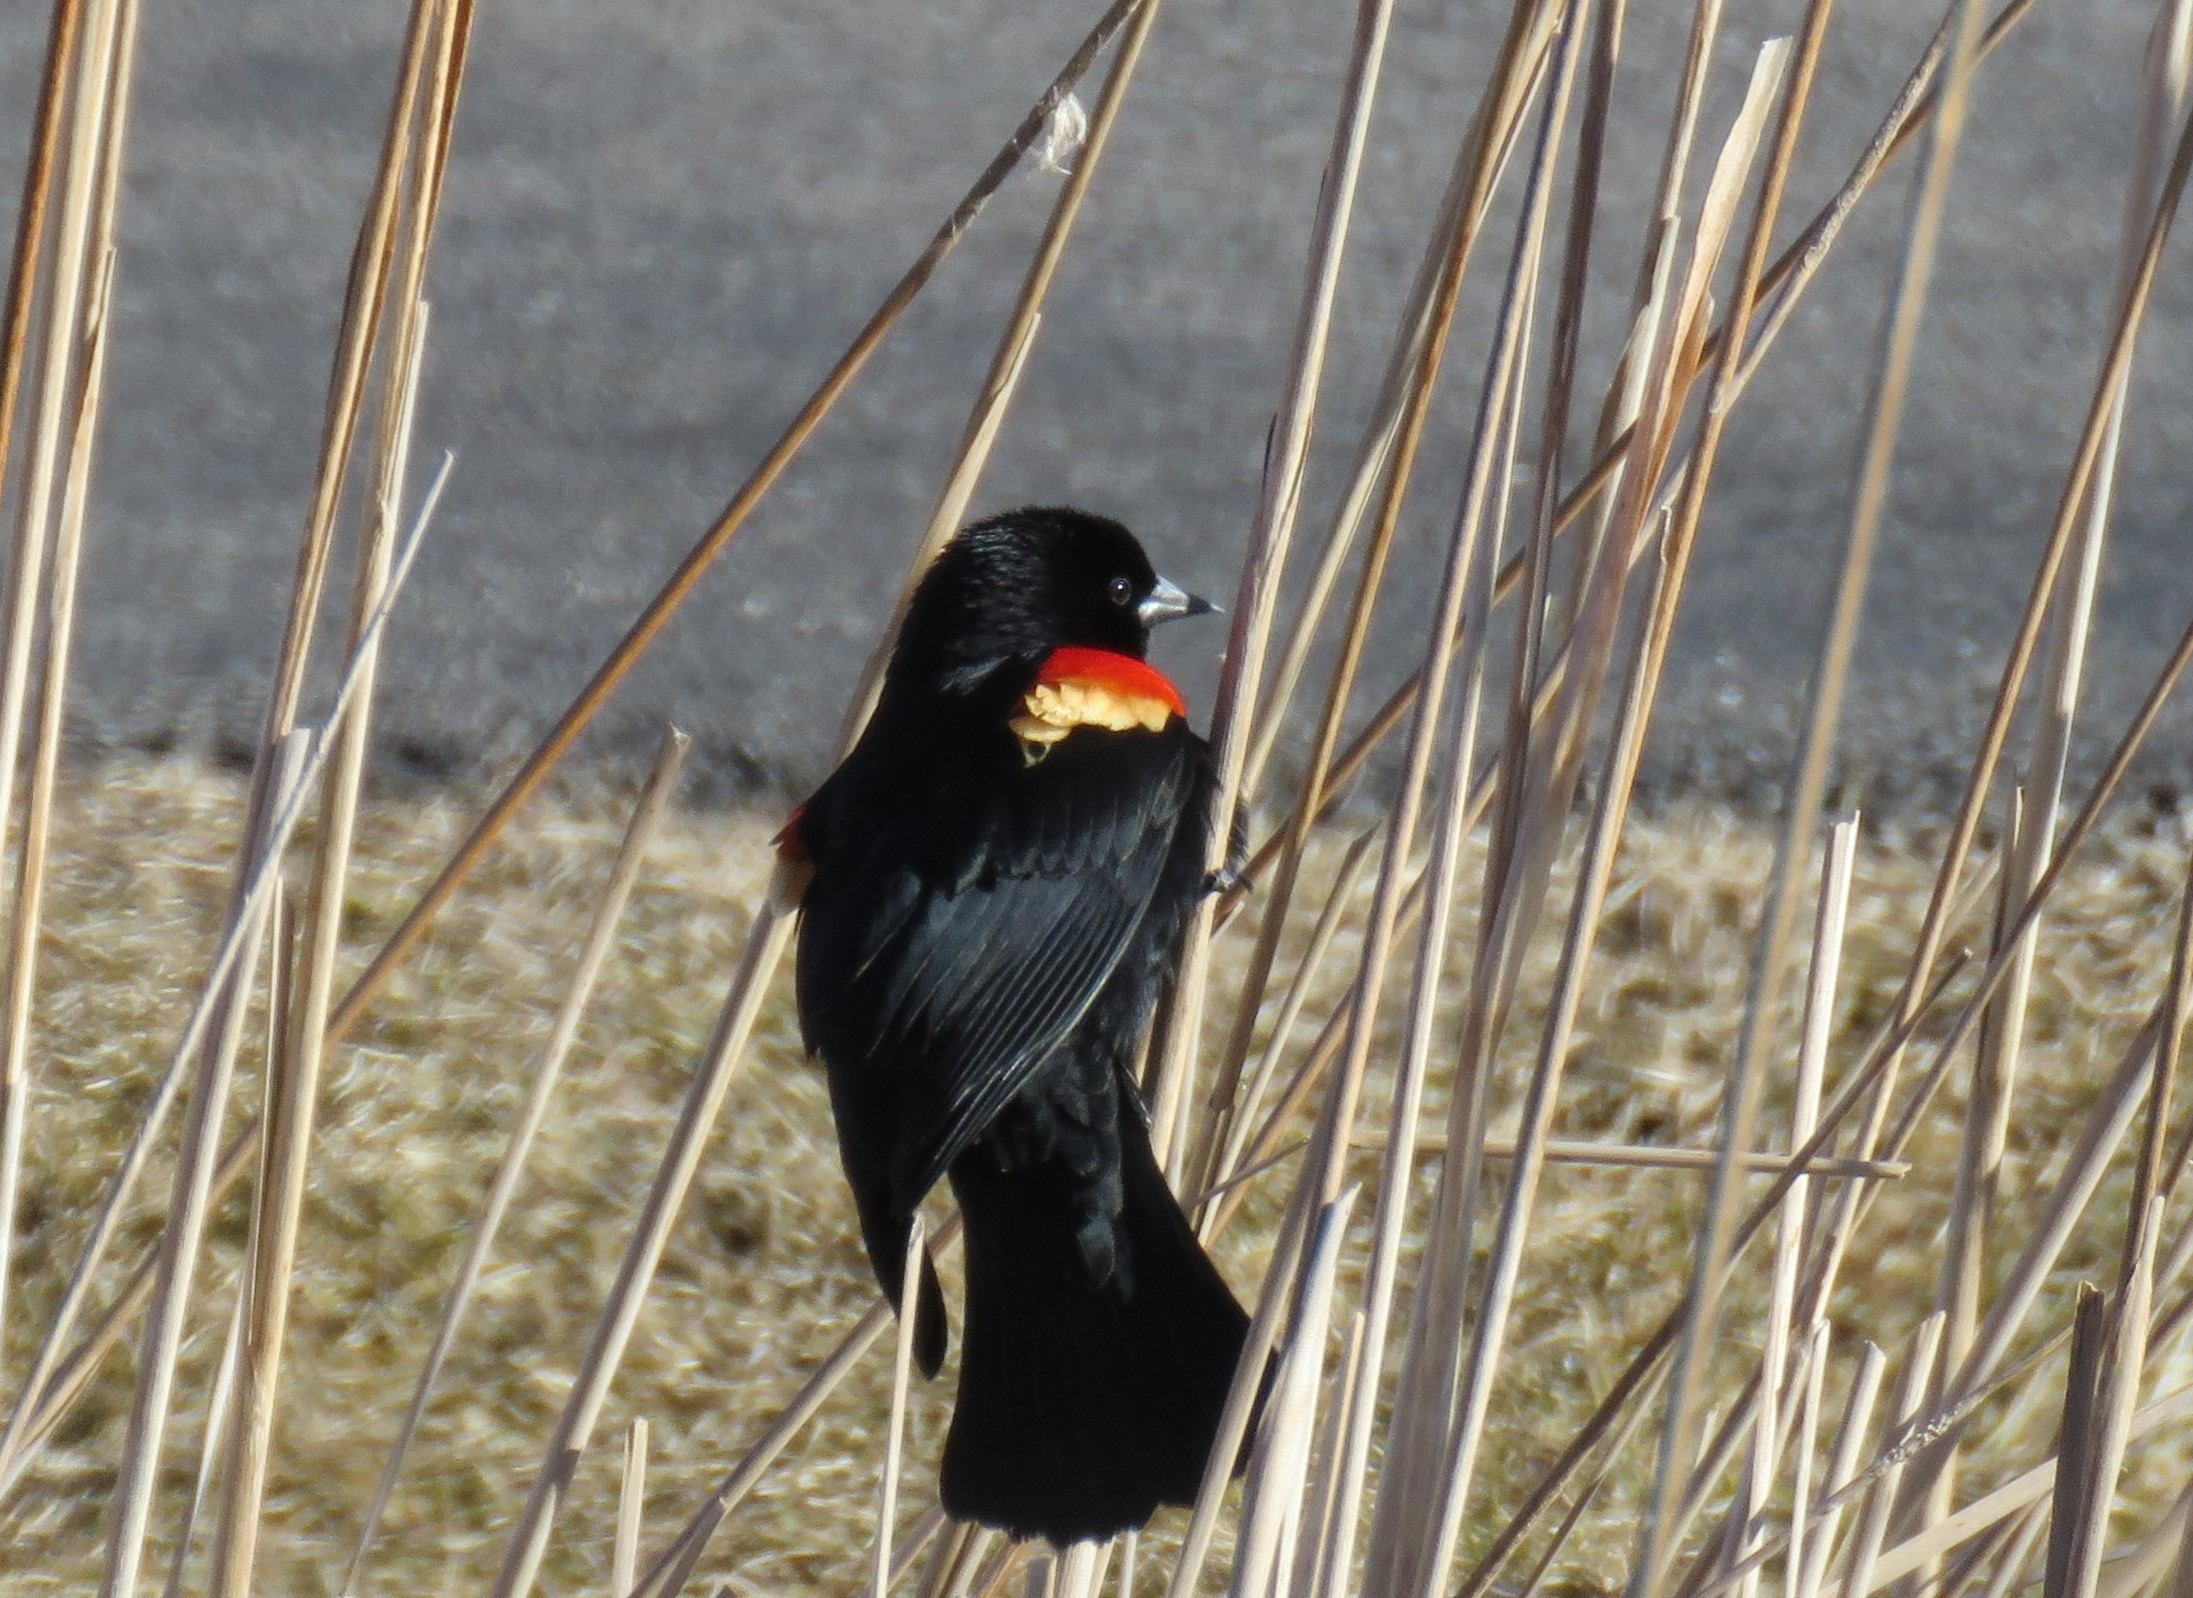 A Red-winged Blackbird perched on a reed